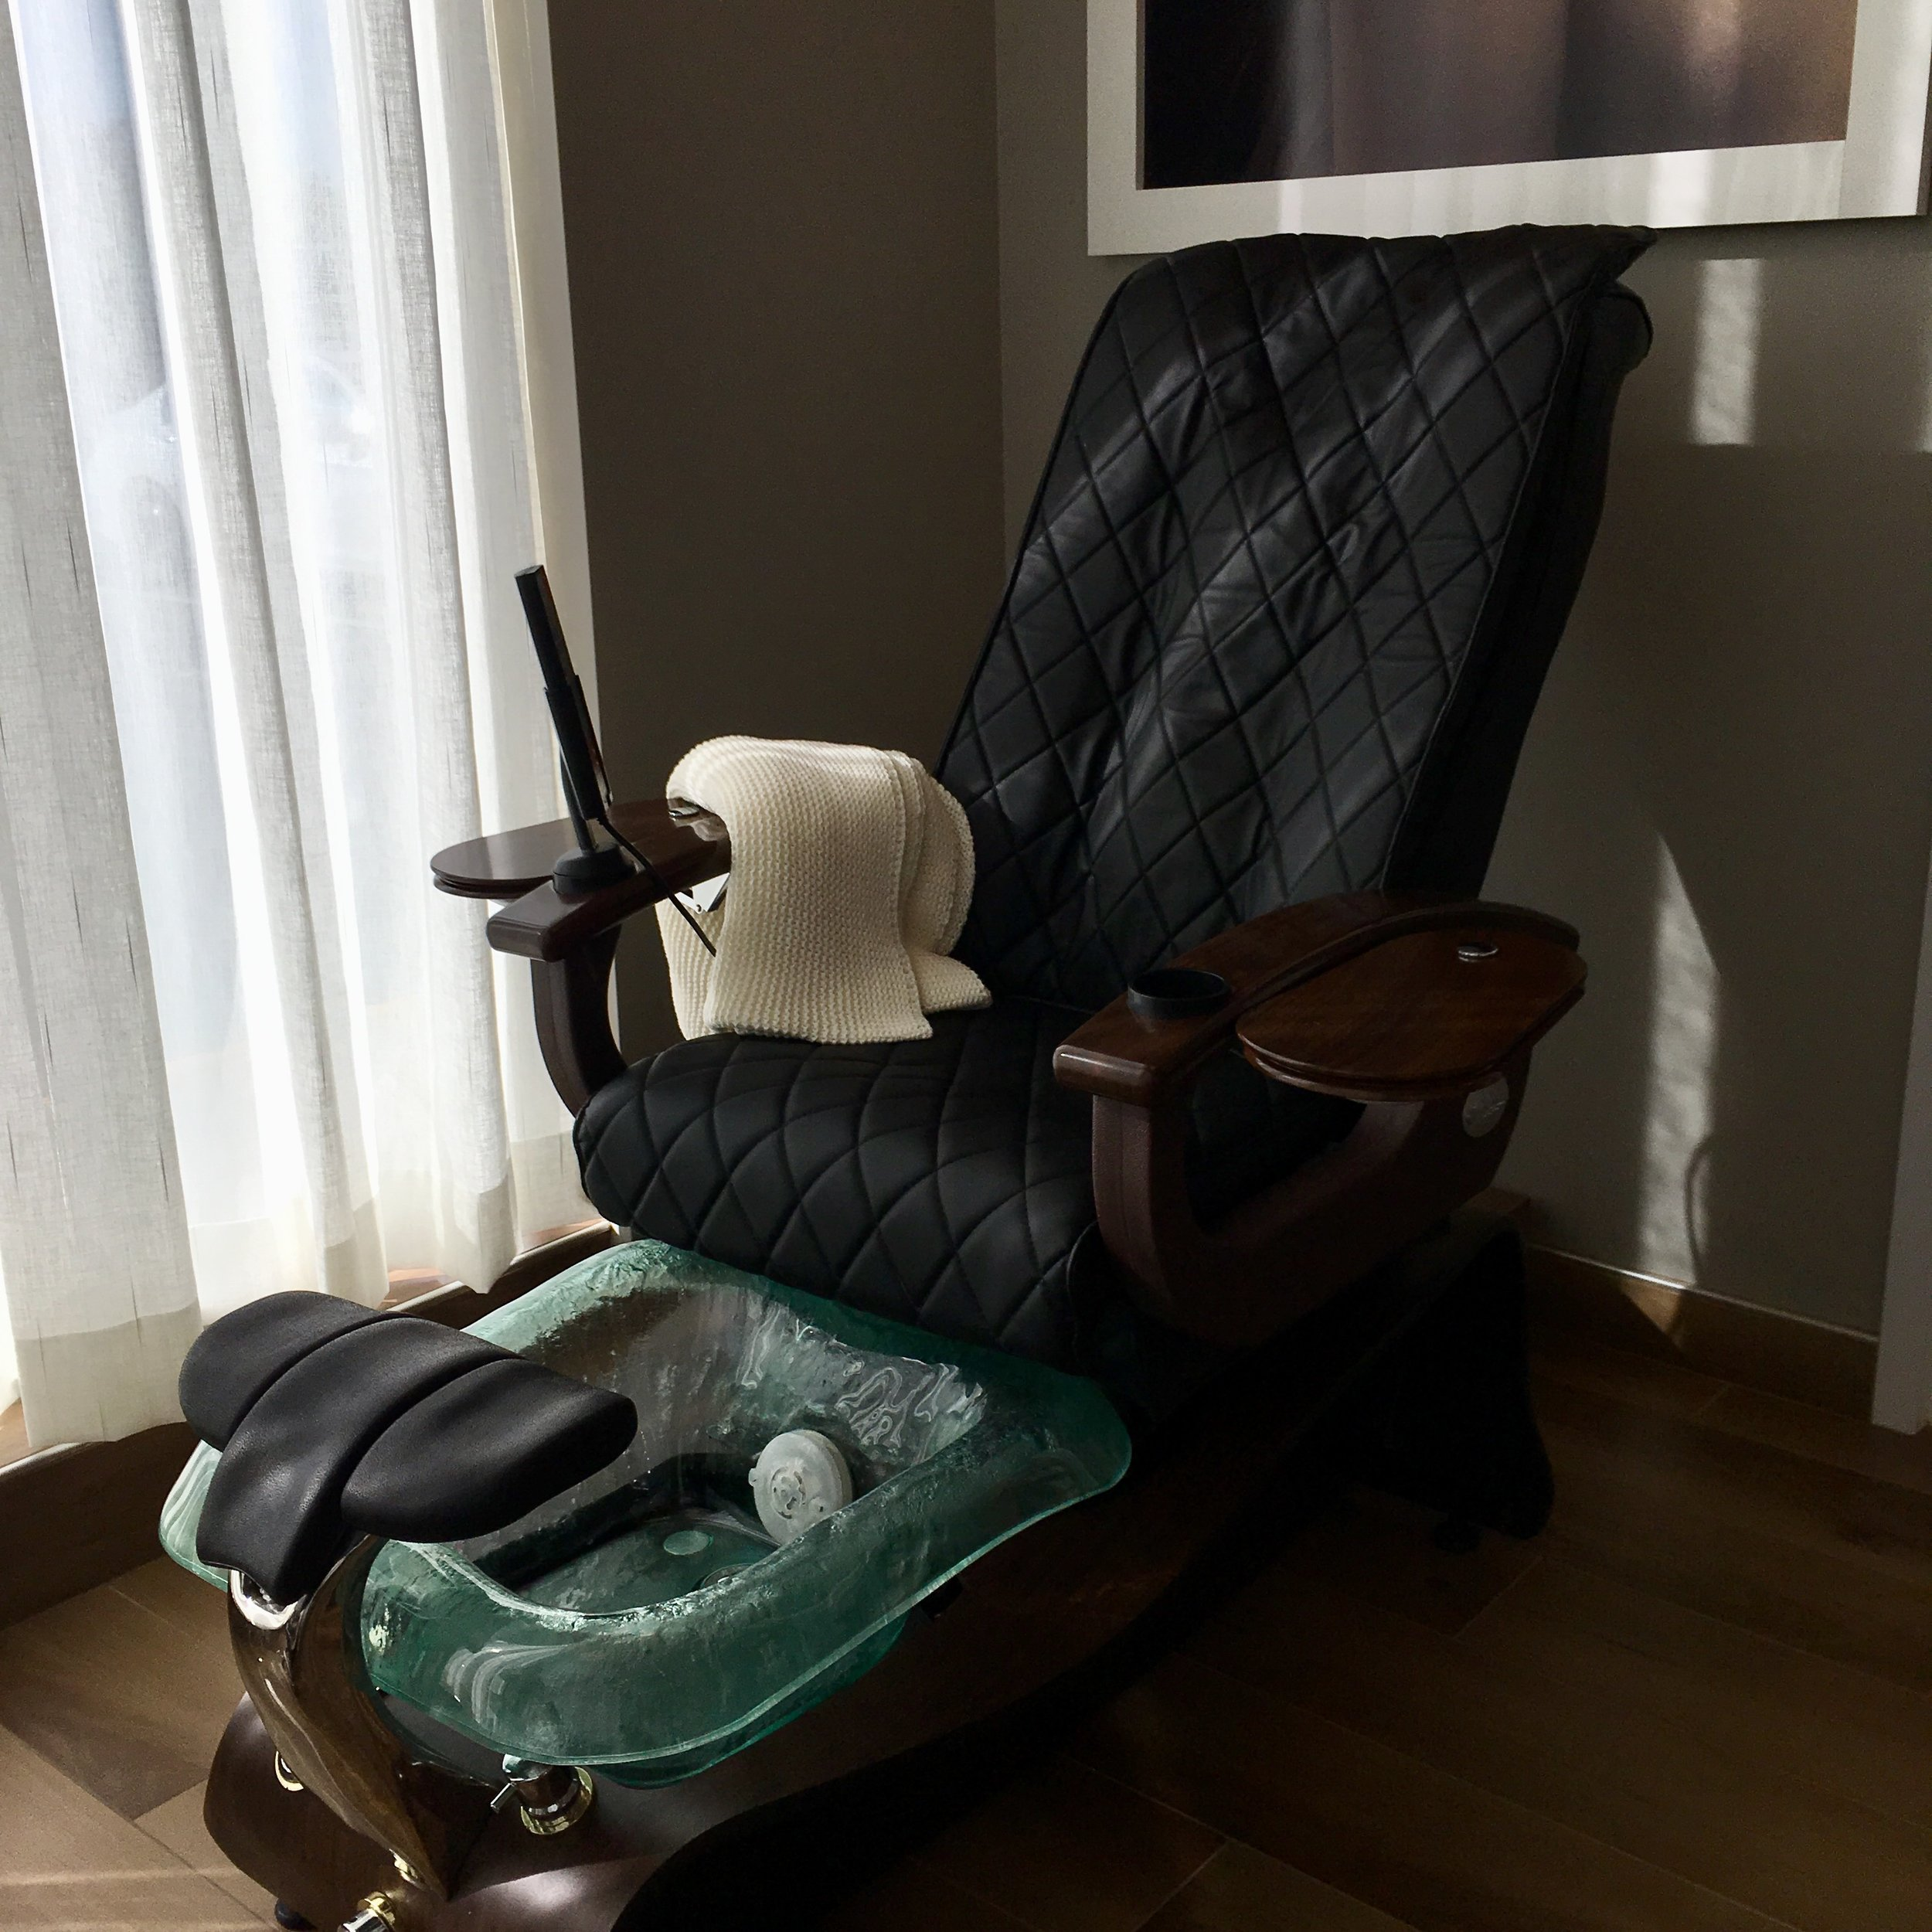 Massage and Pedicure chair at Portland Street Spa